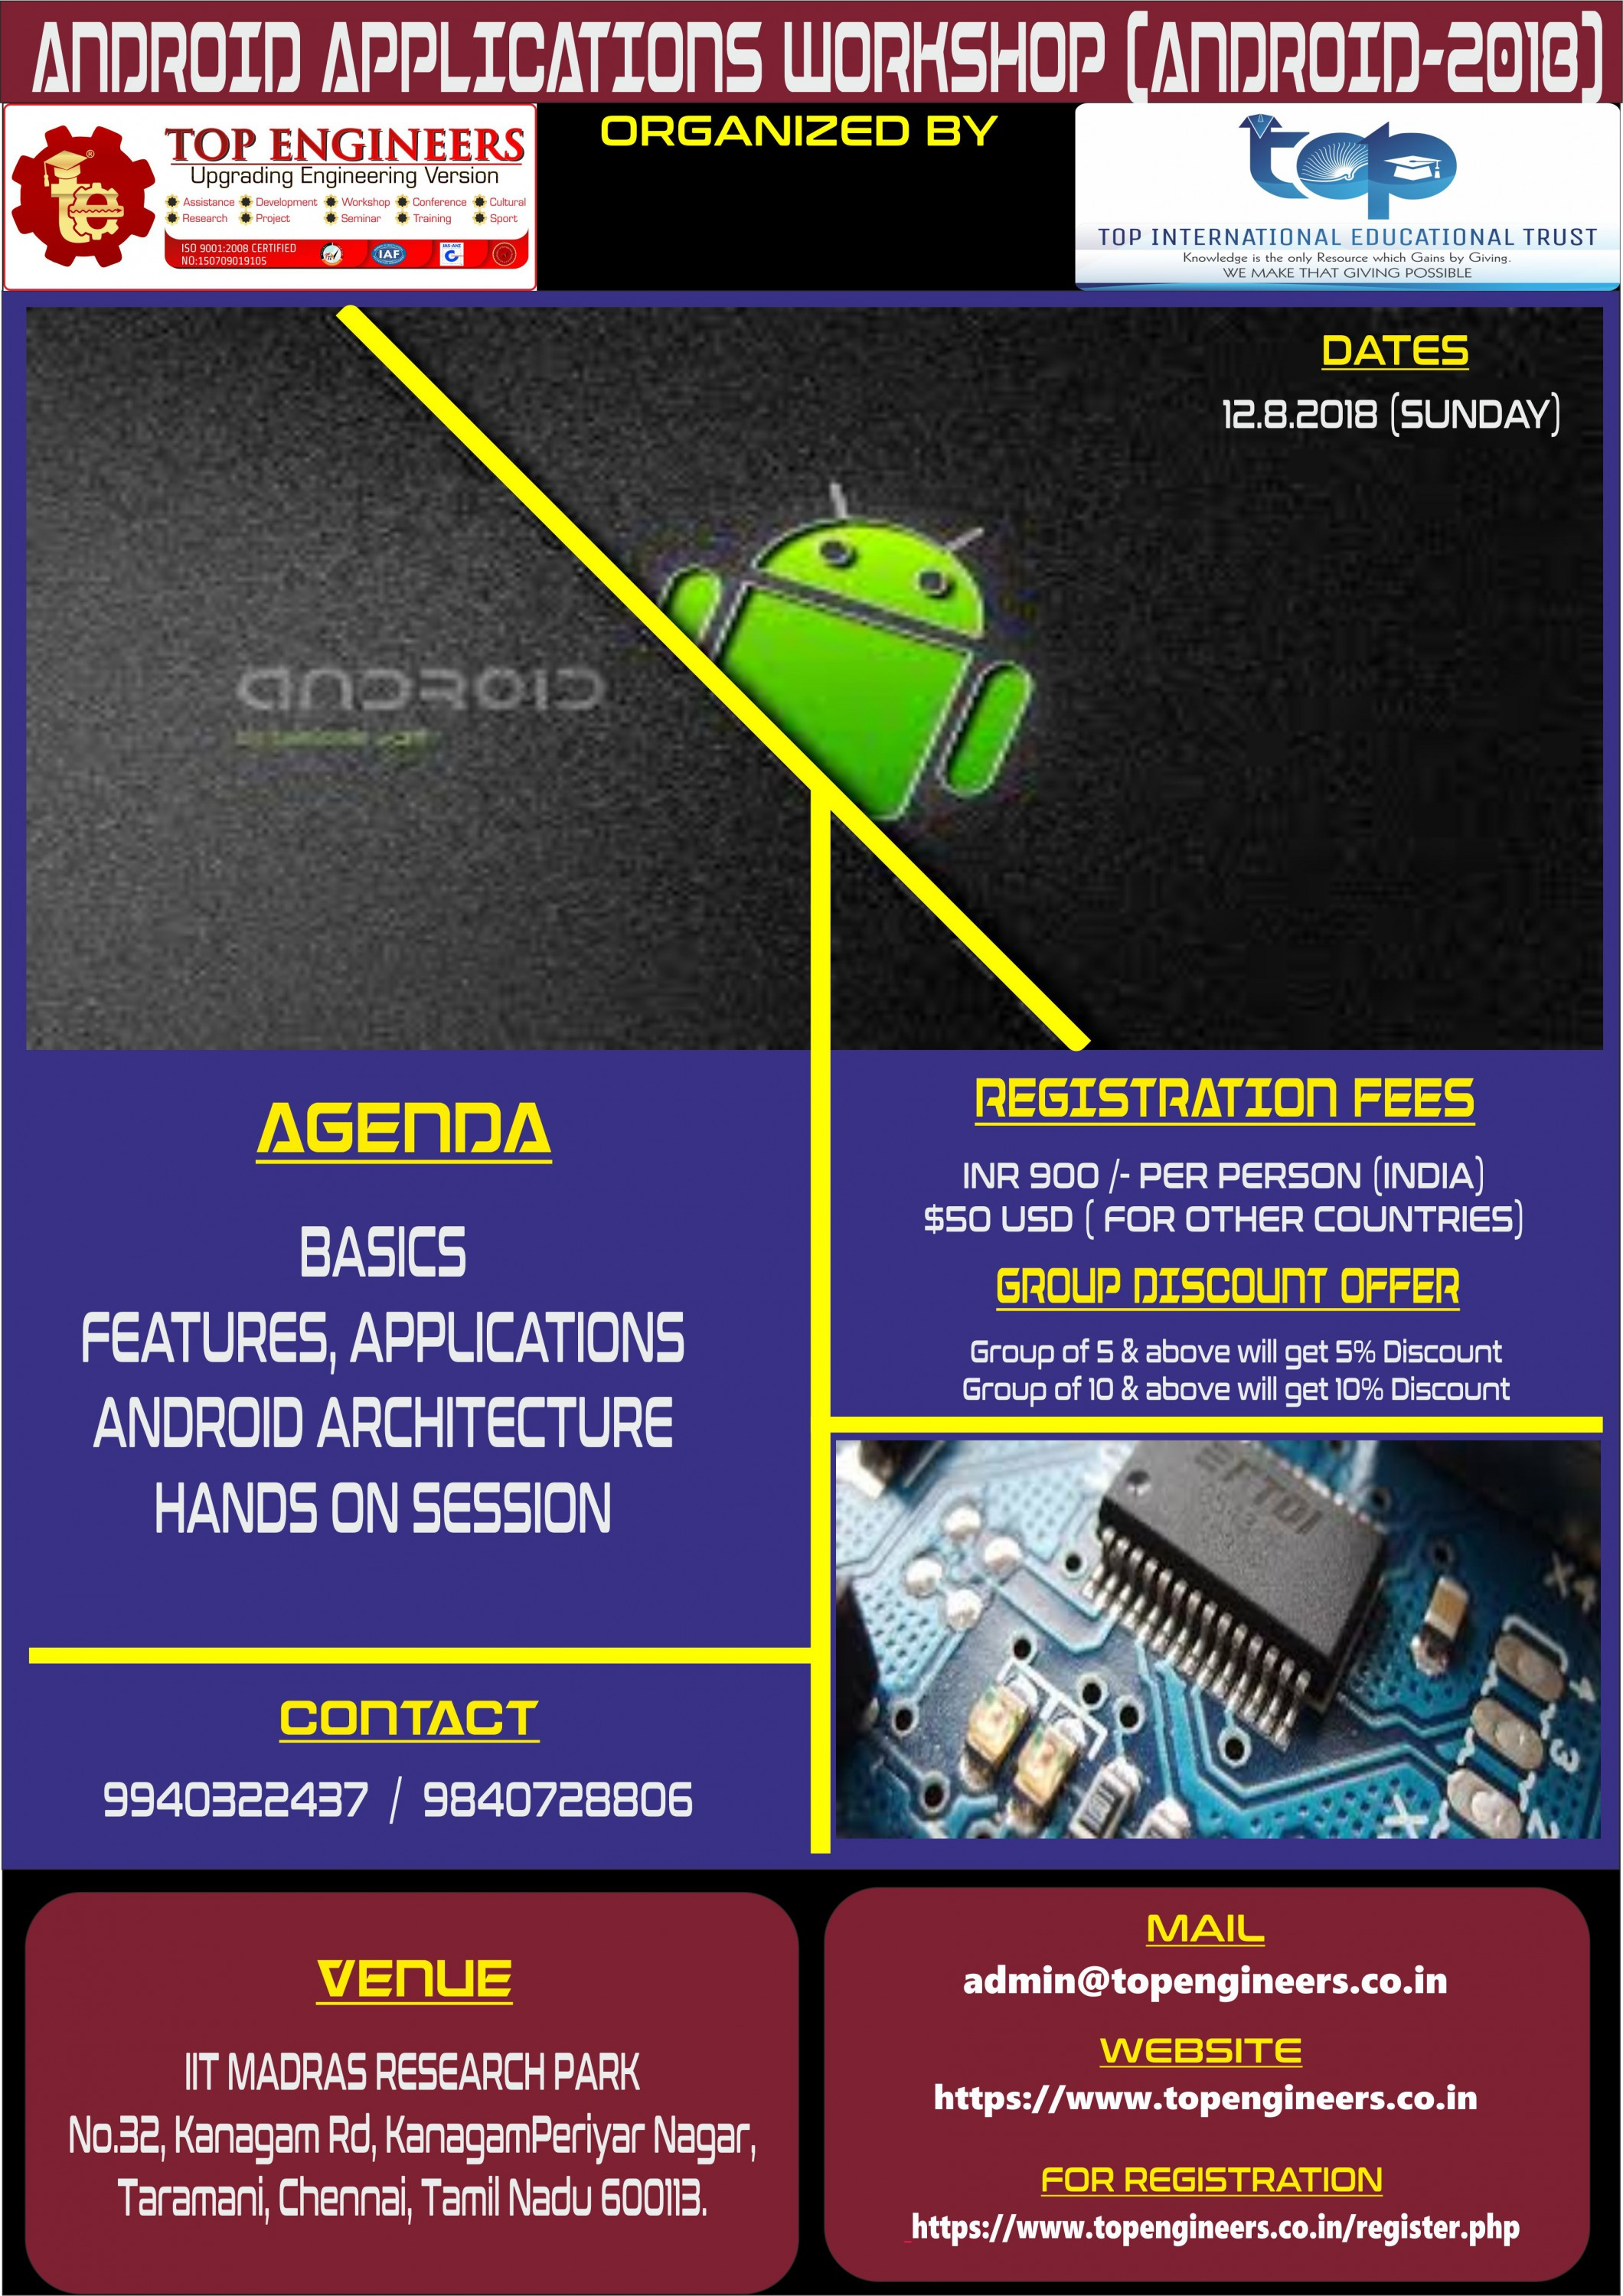 Android Applications Workshop Android 2018